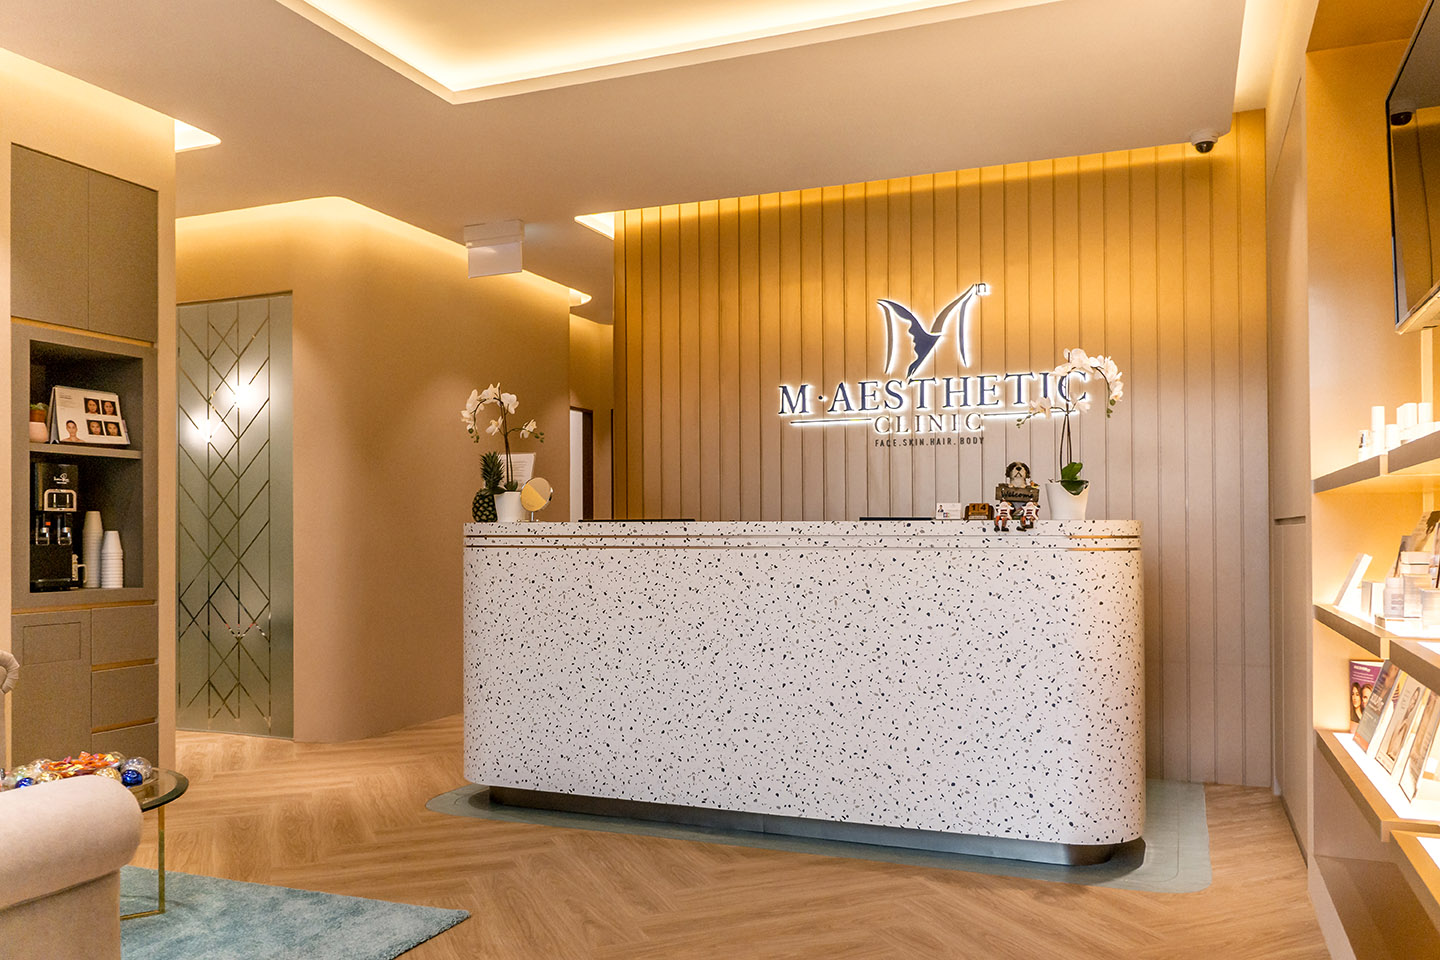 M-Aesthetic Clinic